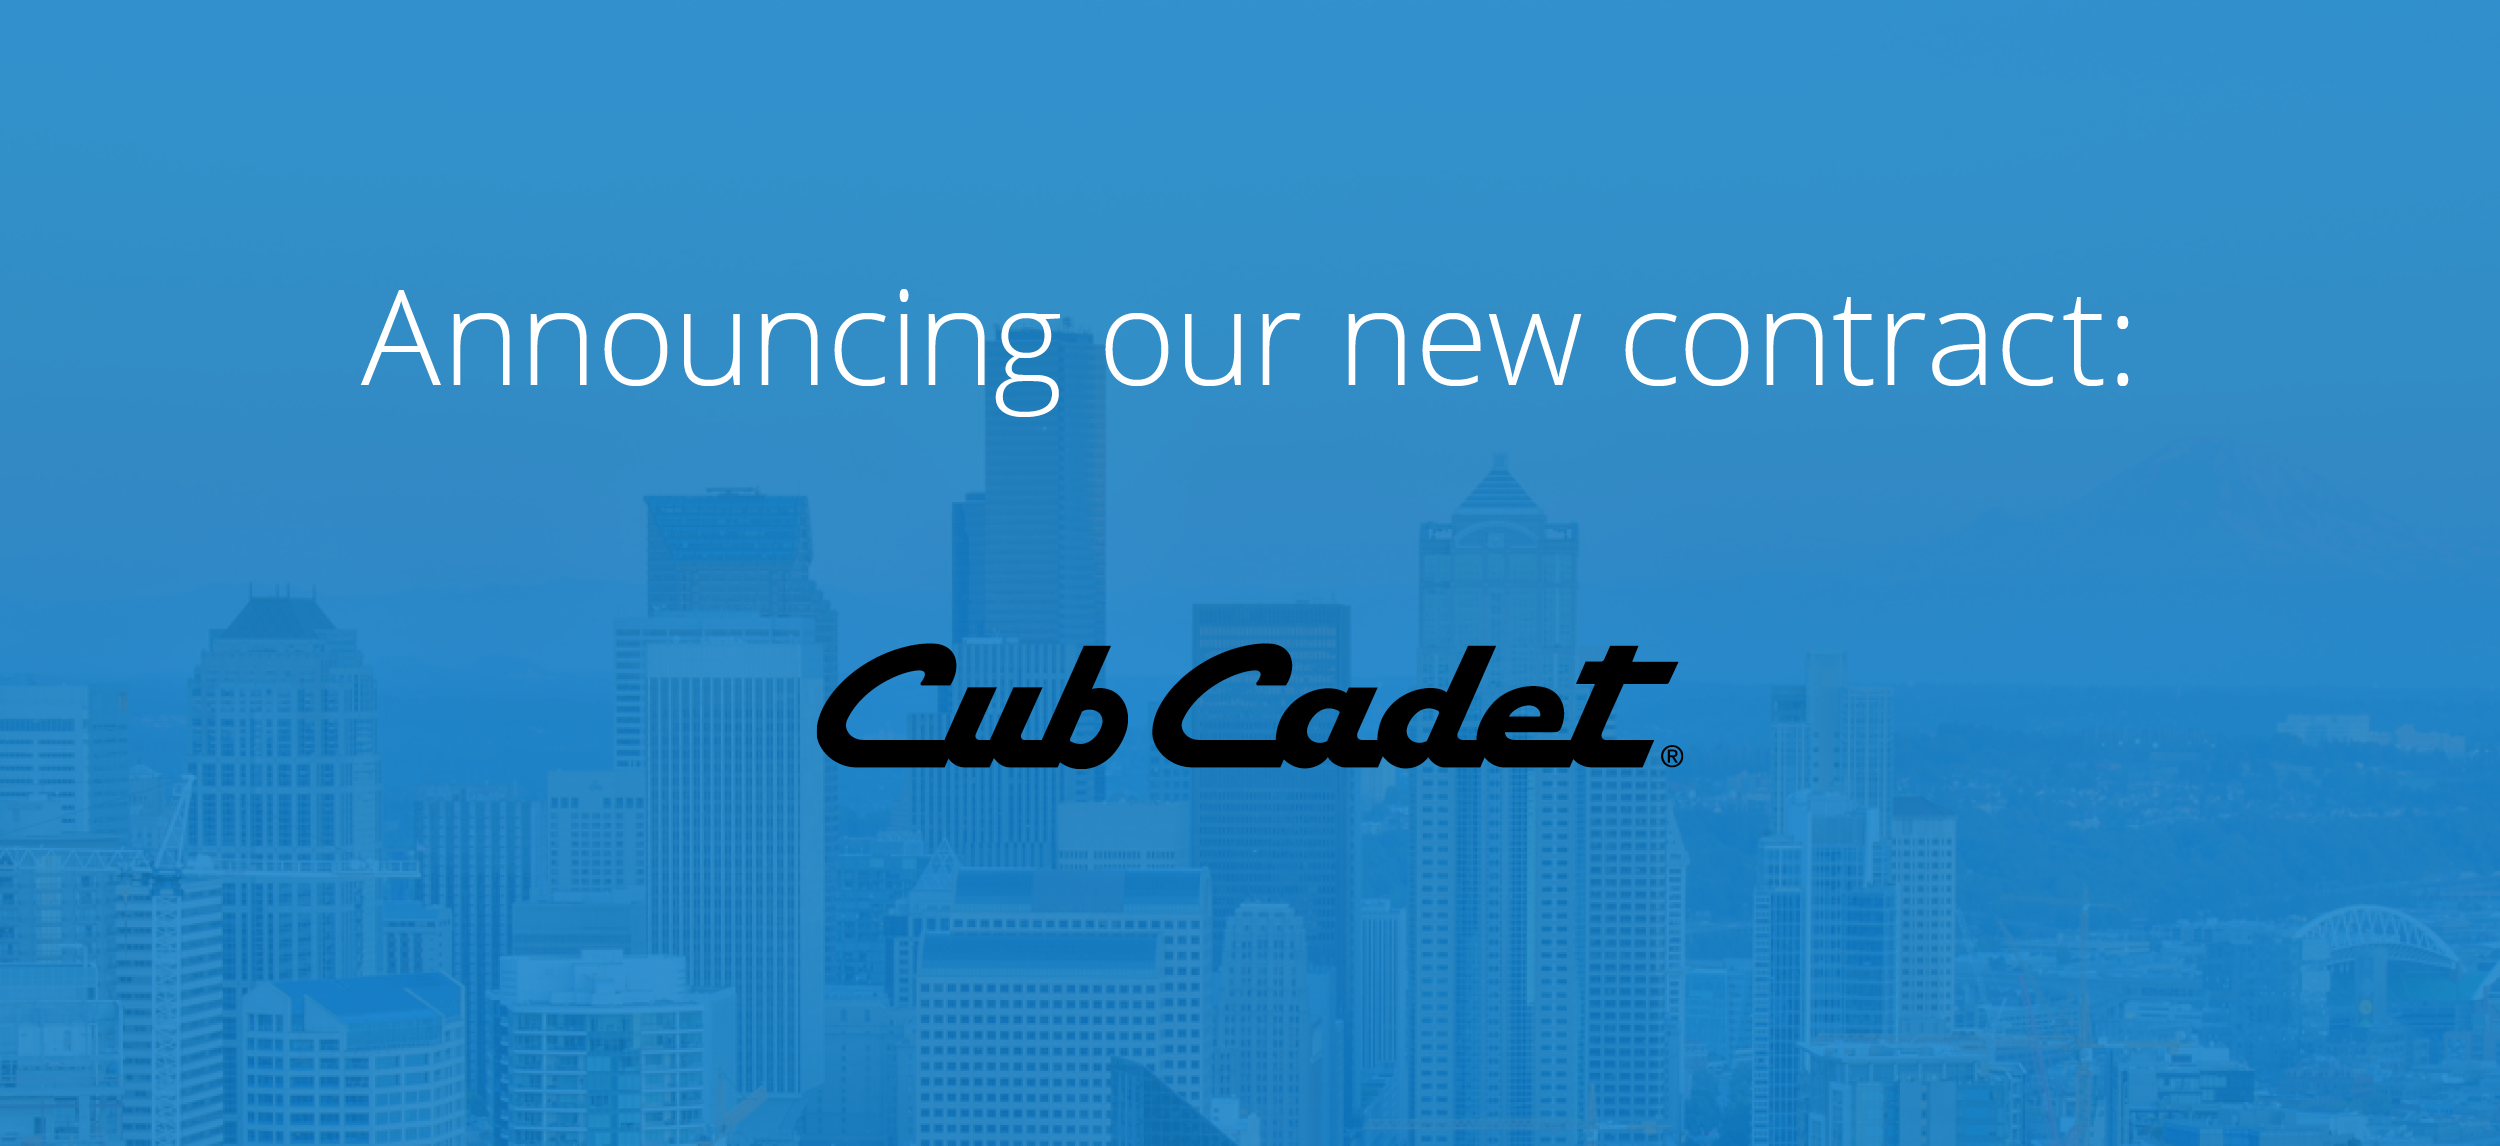 Announcing Cub Cadet: Our Newest Contract